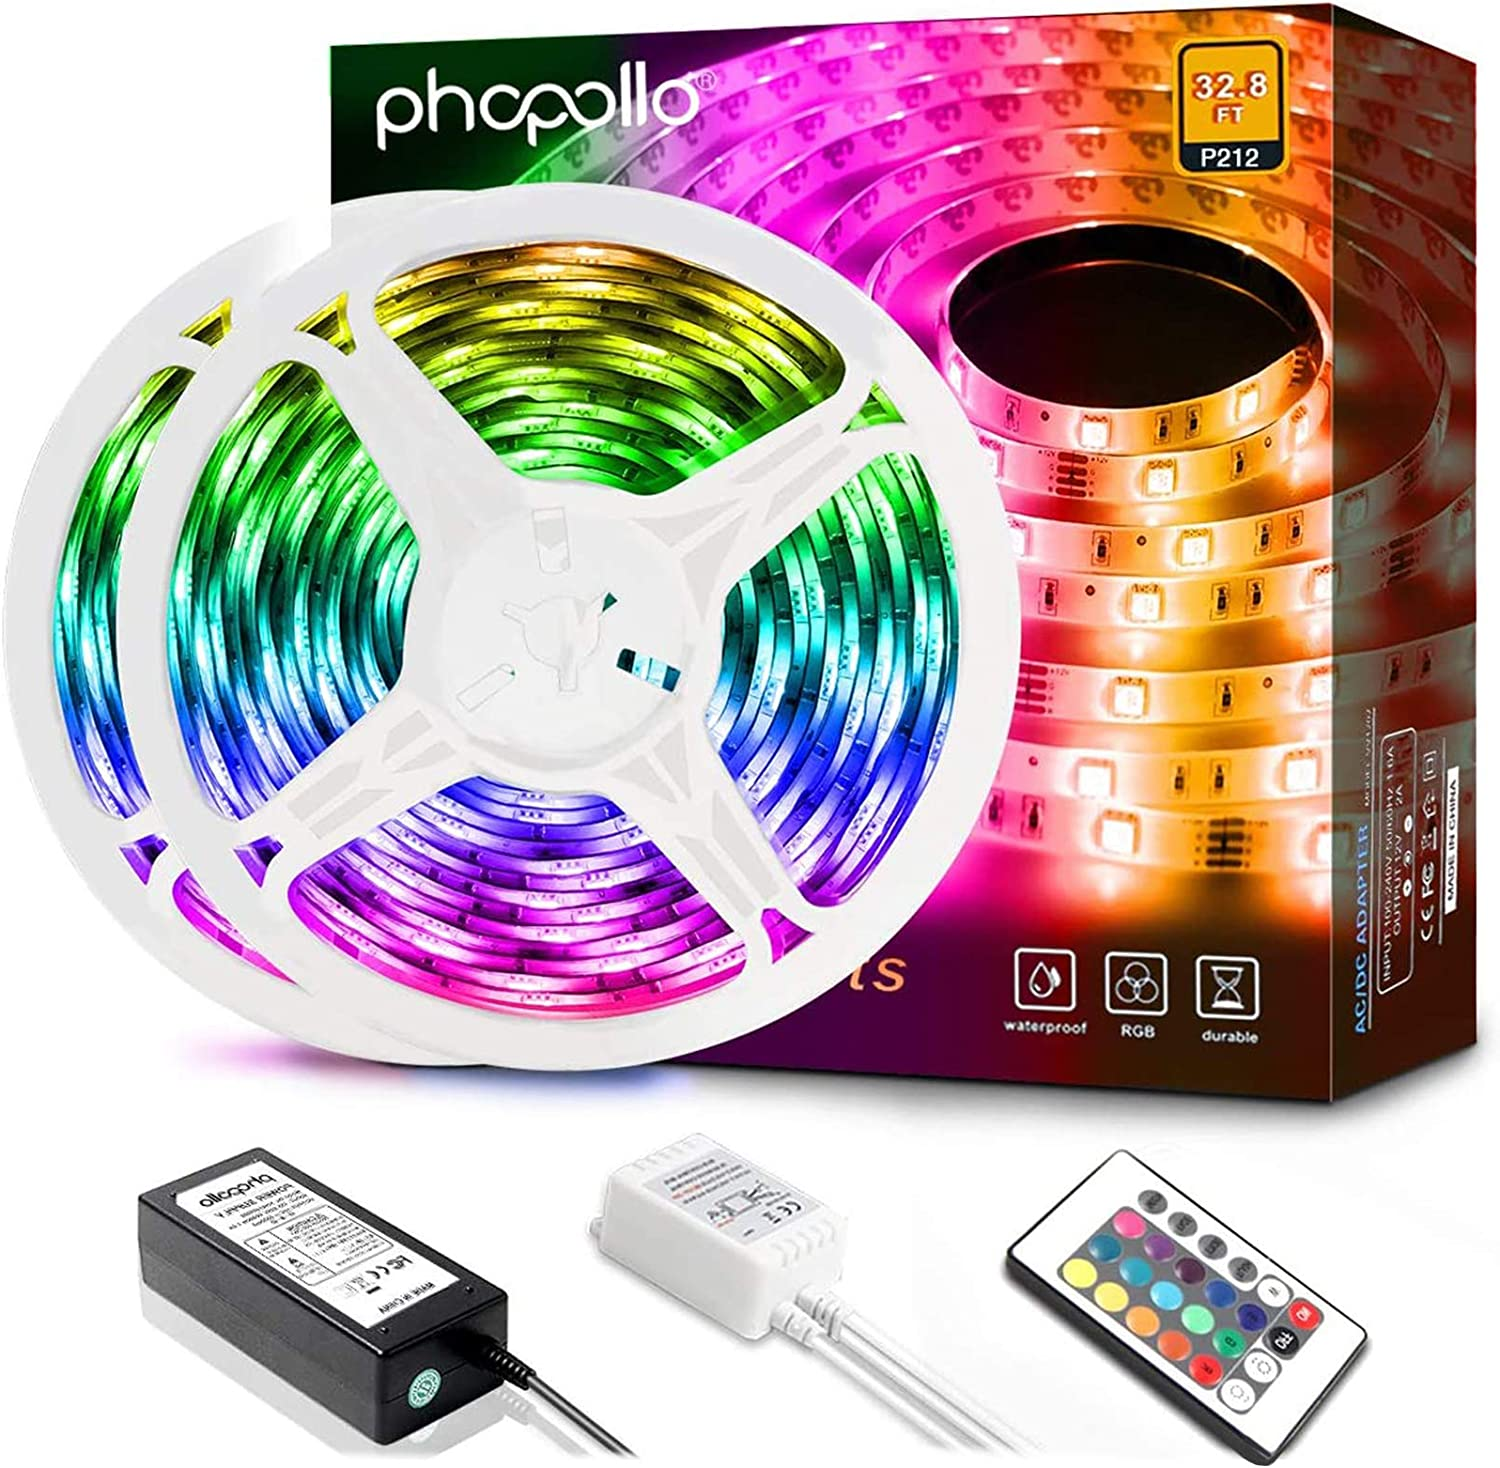 Phopollo Led Strip Lights, 32.8ft 600 LEDs Waterproof Flexible LED Lights with 24 Keys IR Remote Controller and 12V Power Supply for Bedroom House and Home Decoration